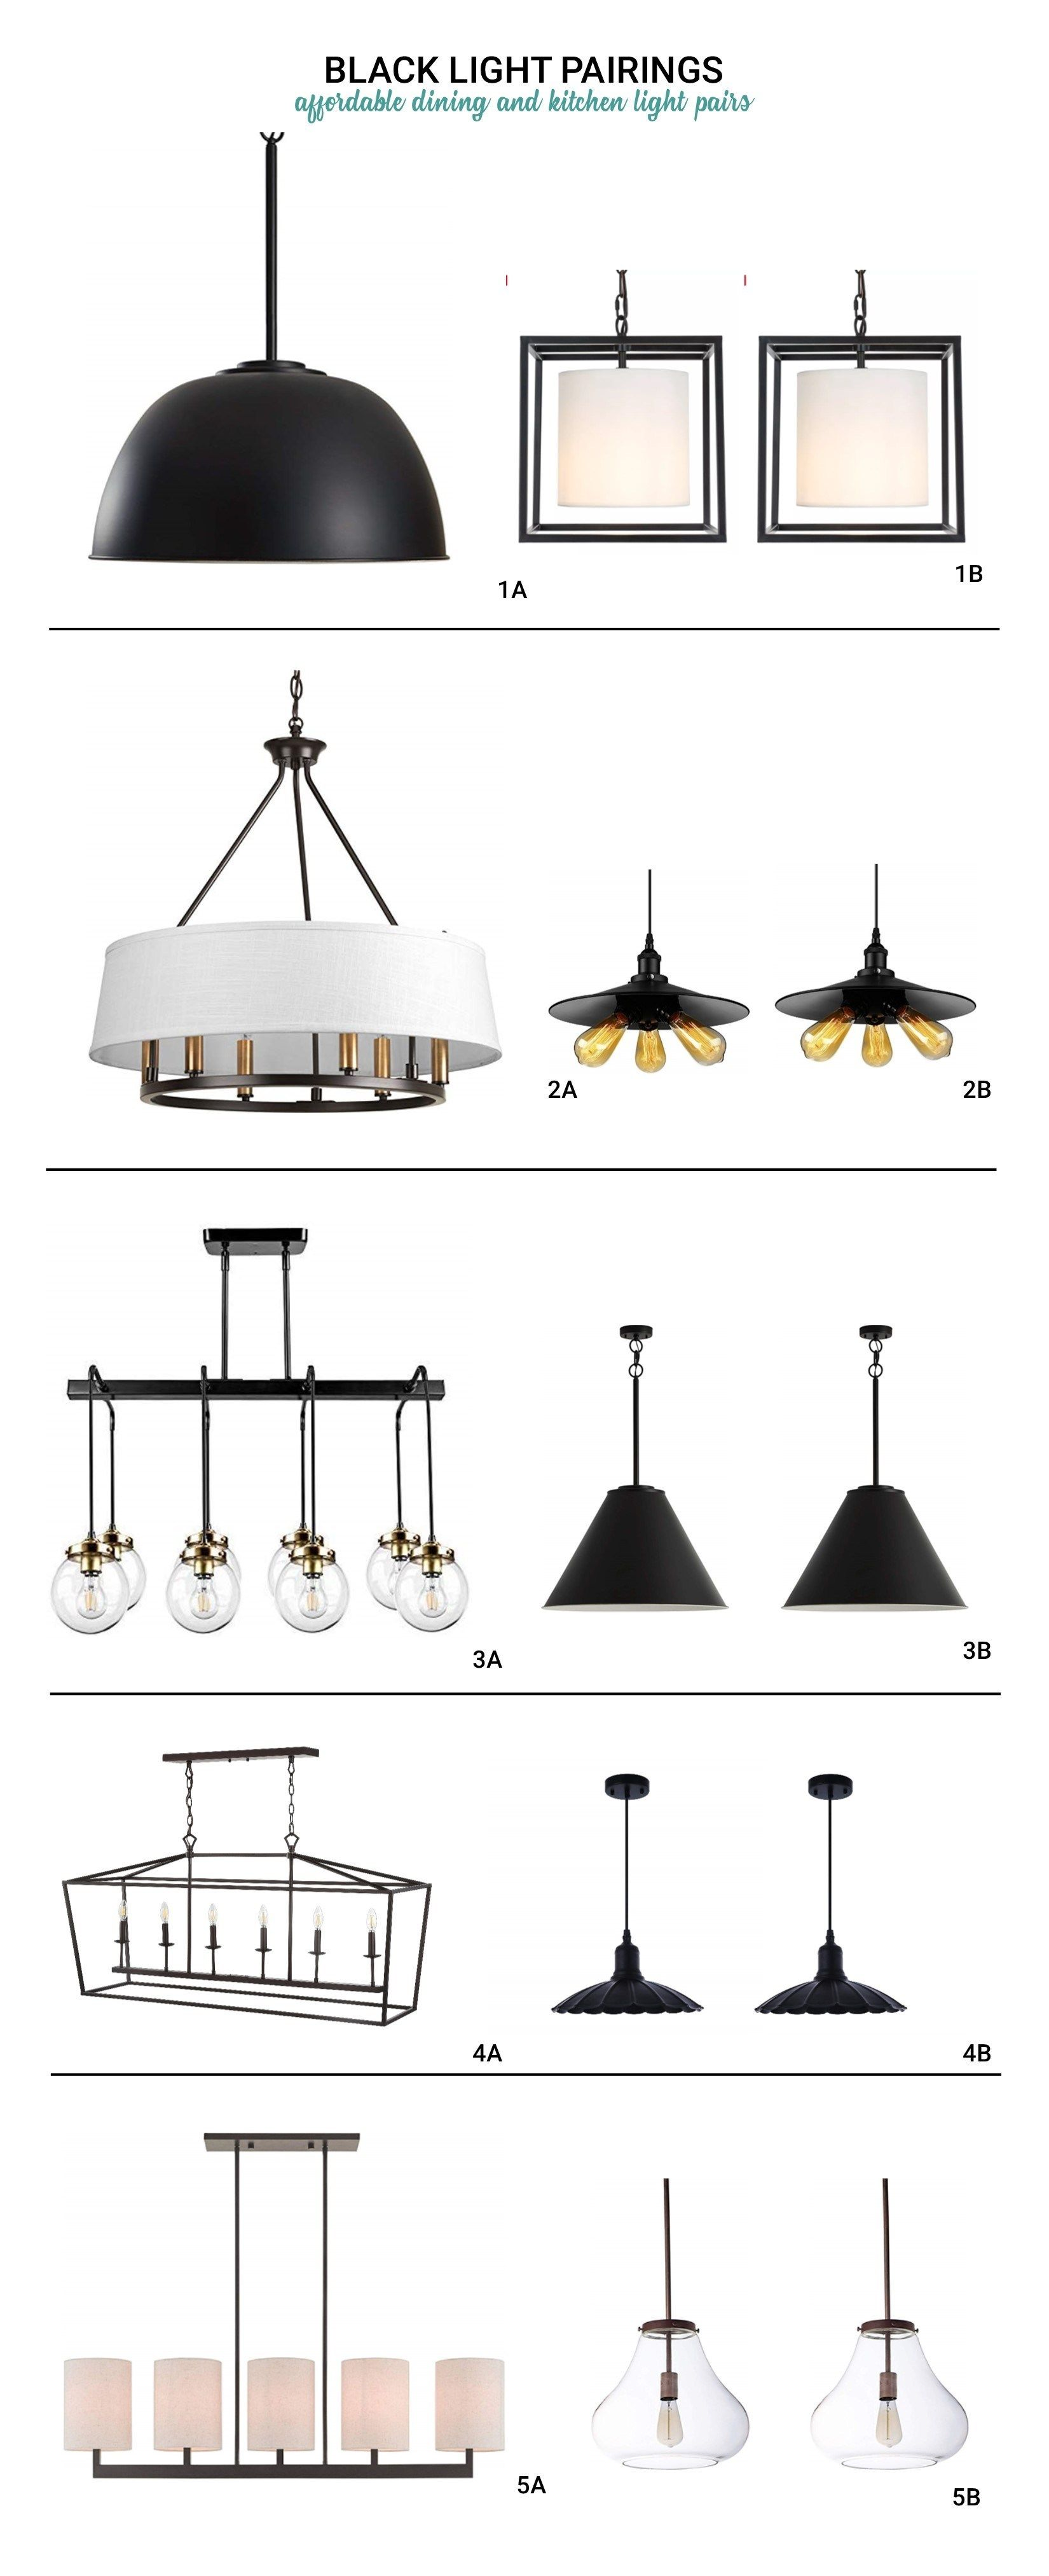 Dining Kitchen Light Pairings Kitchen Lighting Dining Pendant